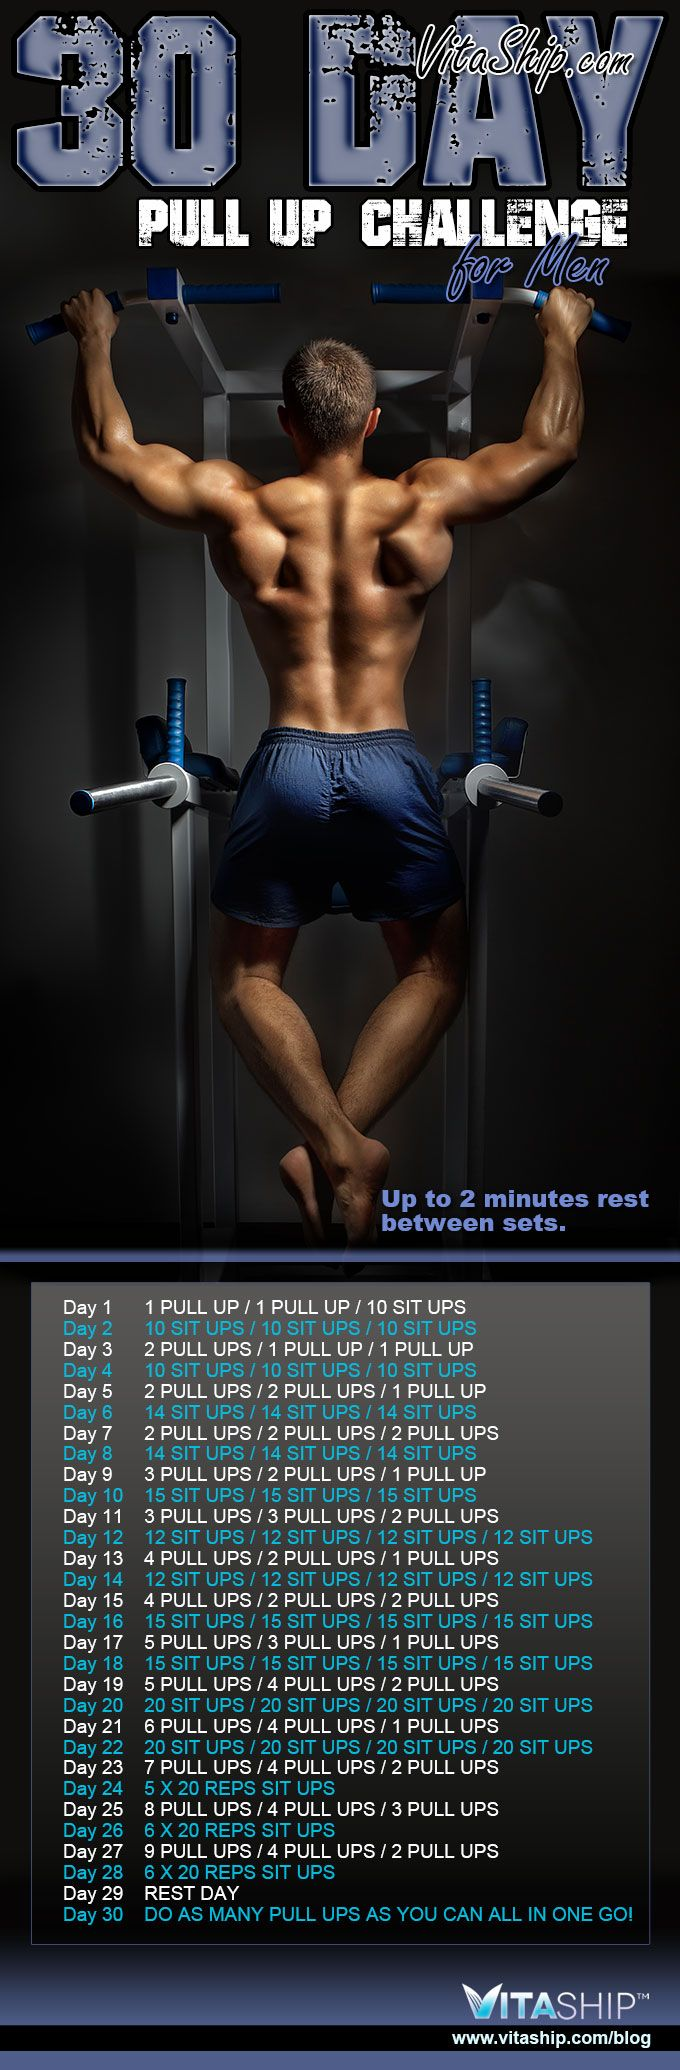 The 30 Day Pull Up Challenge For Men